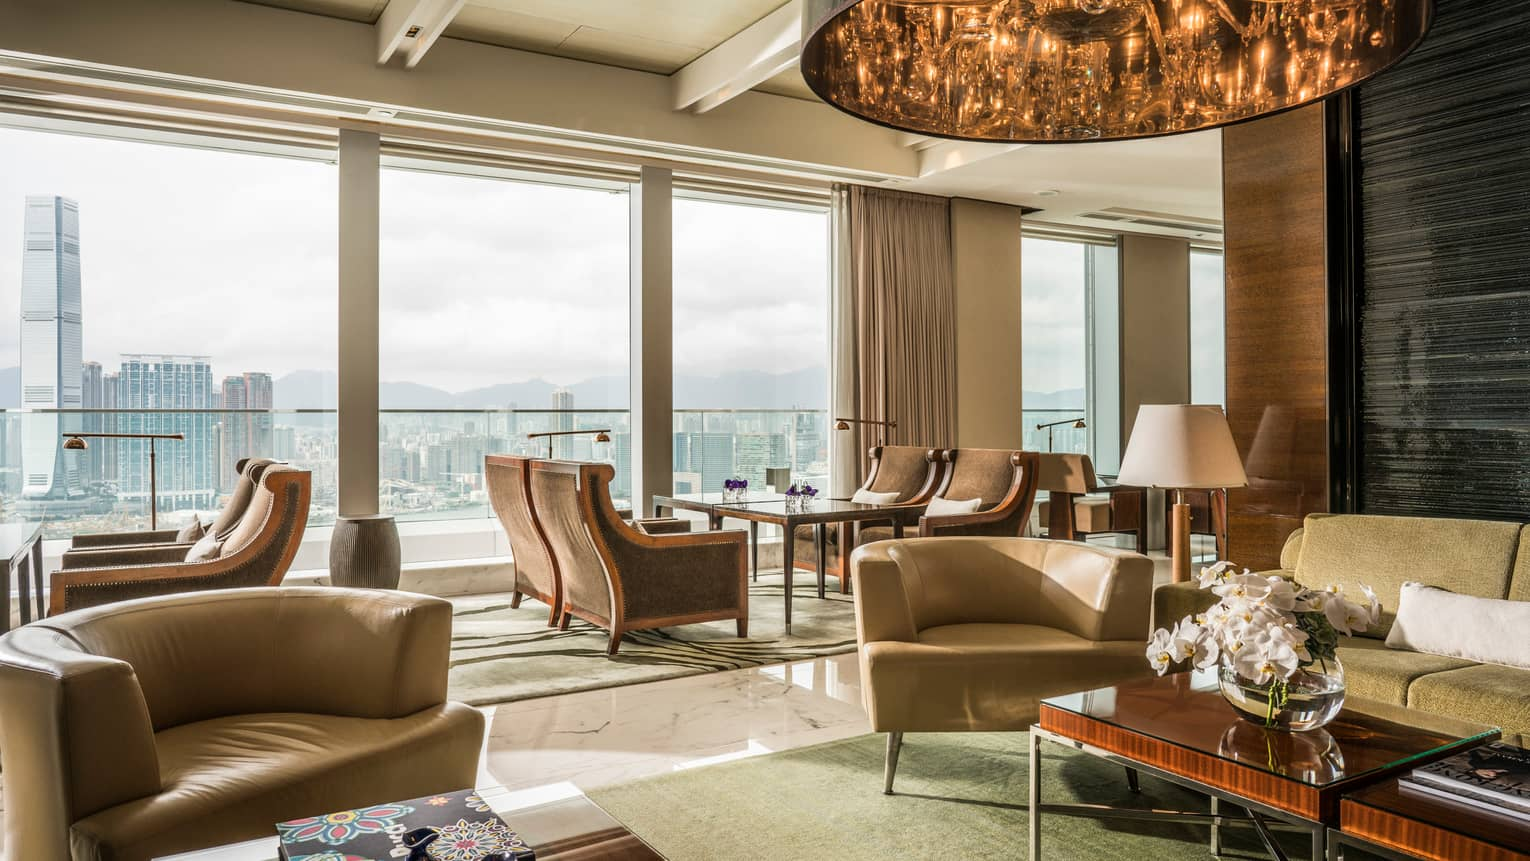 Executive Lounge seating areas with sofas, curved armchairs, bright floor-to-ceiling window, city views